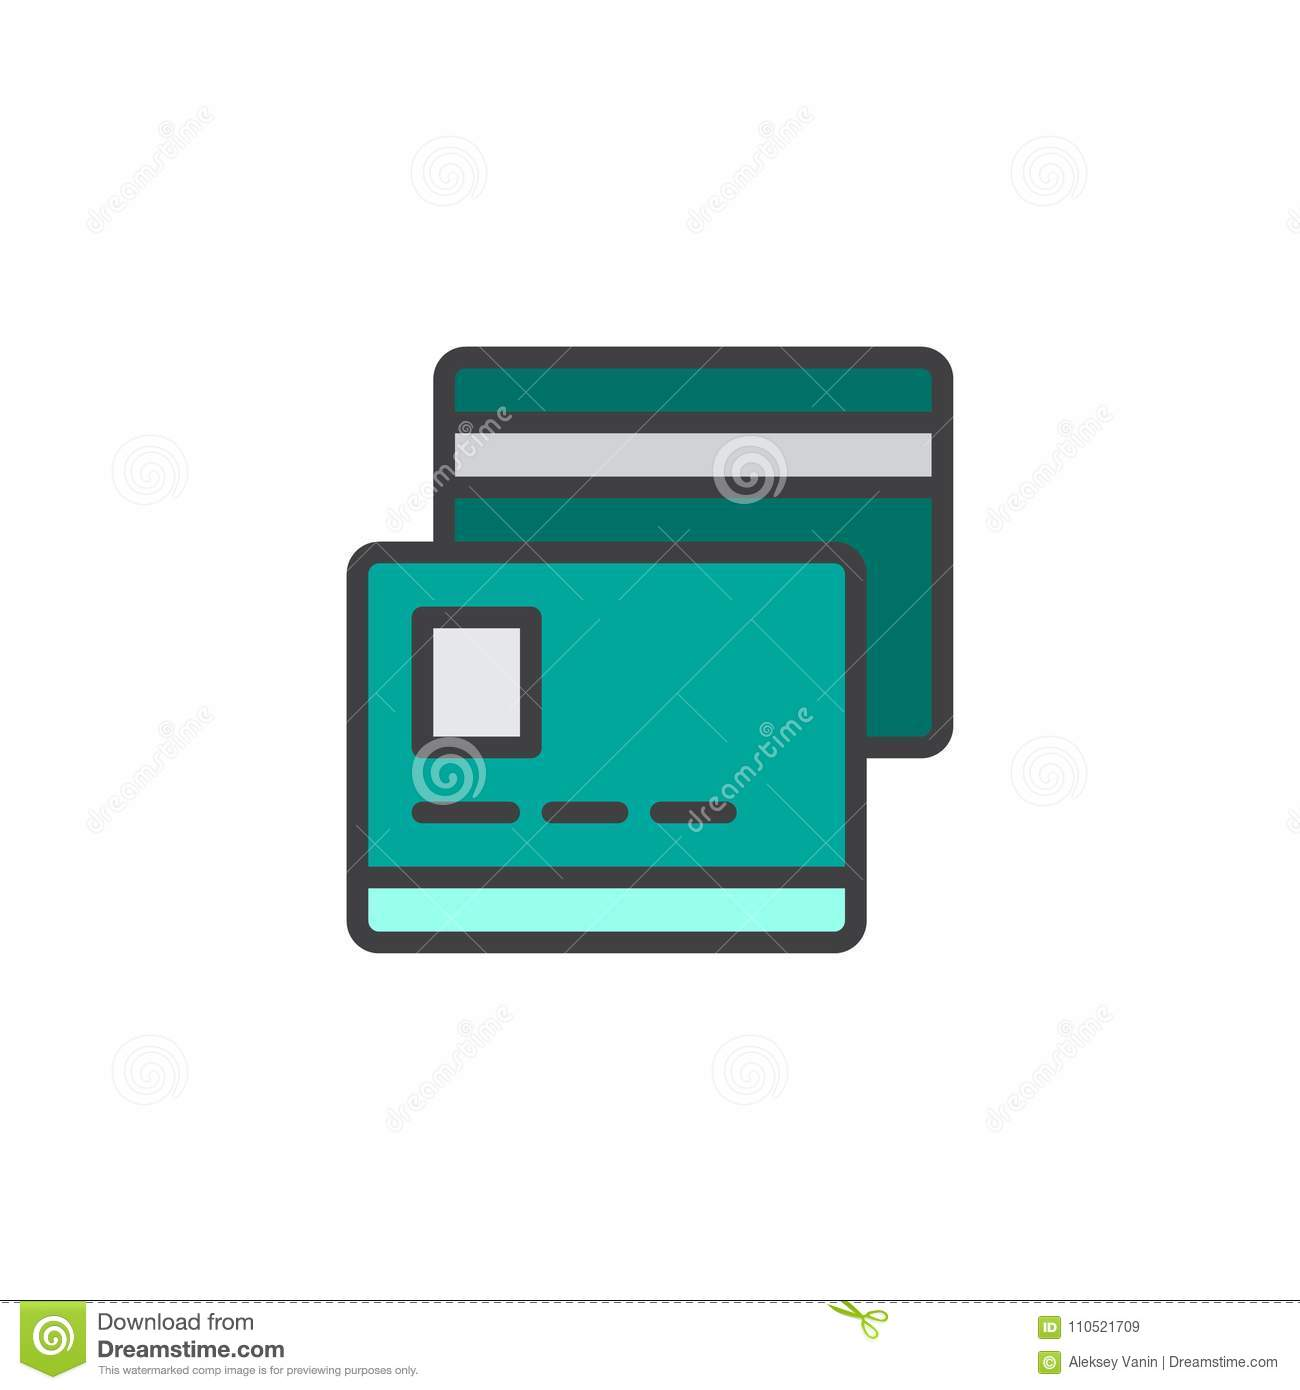 Credit Card Filled Outline Icon Stock Vector - Illustration